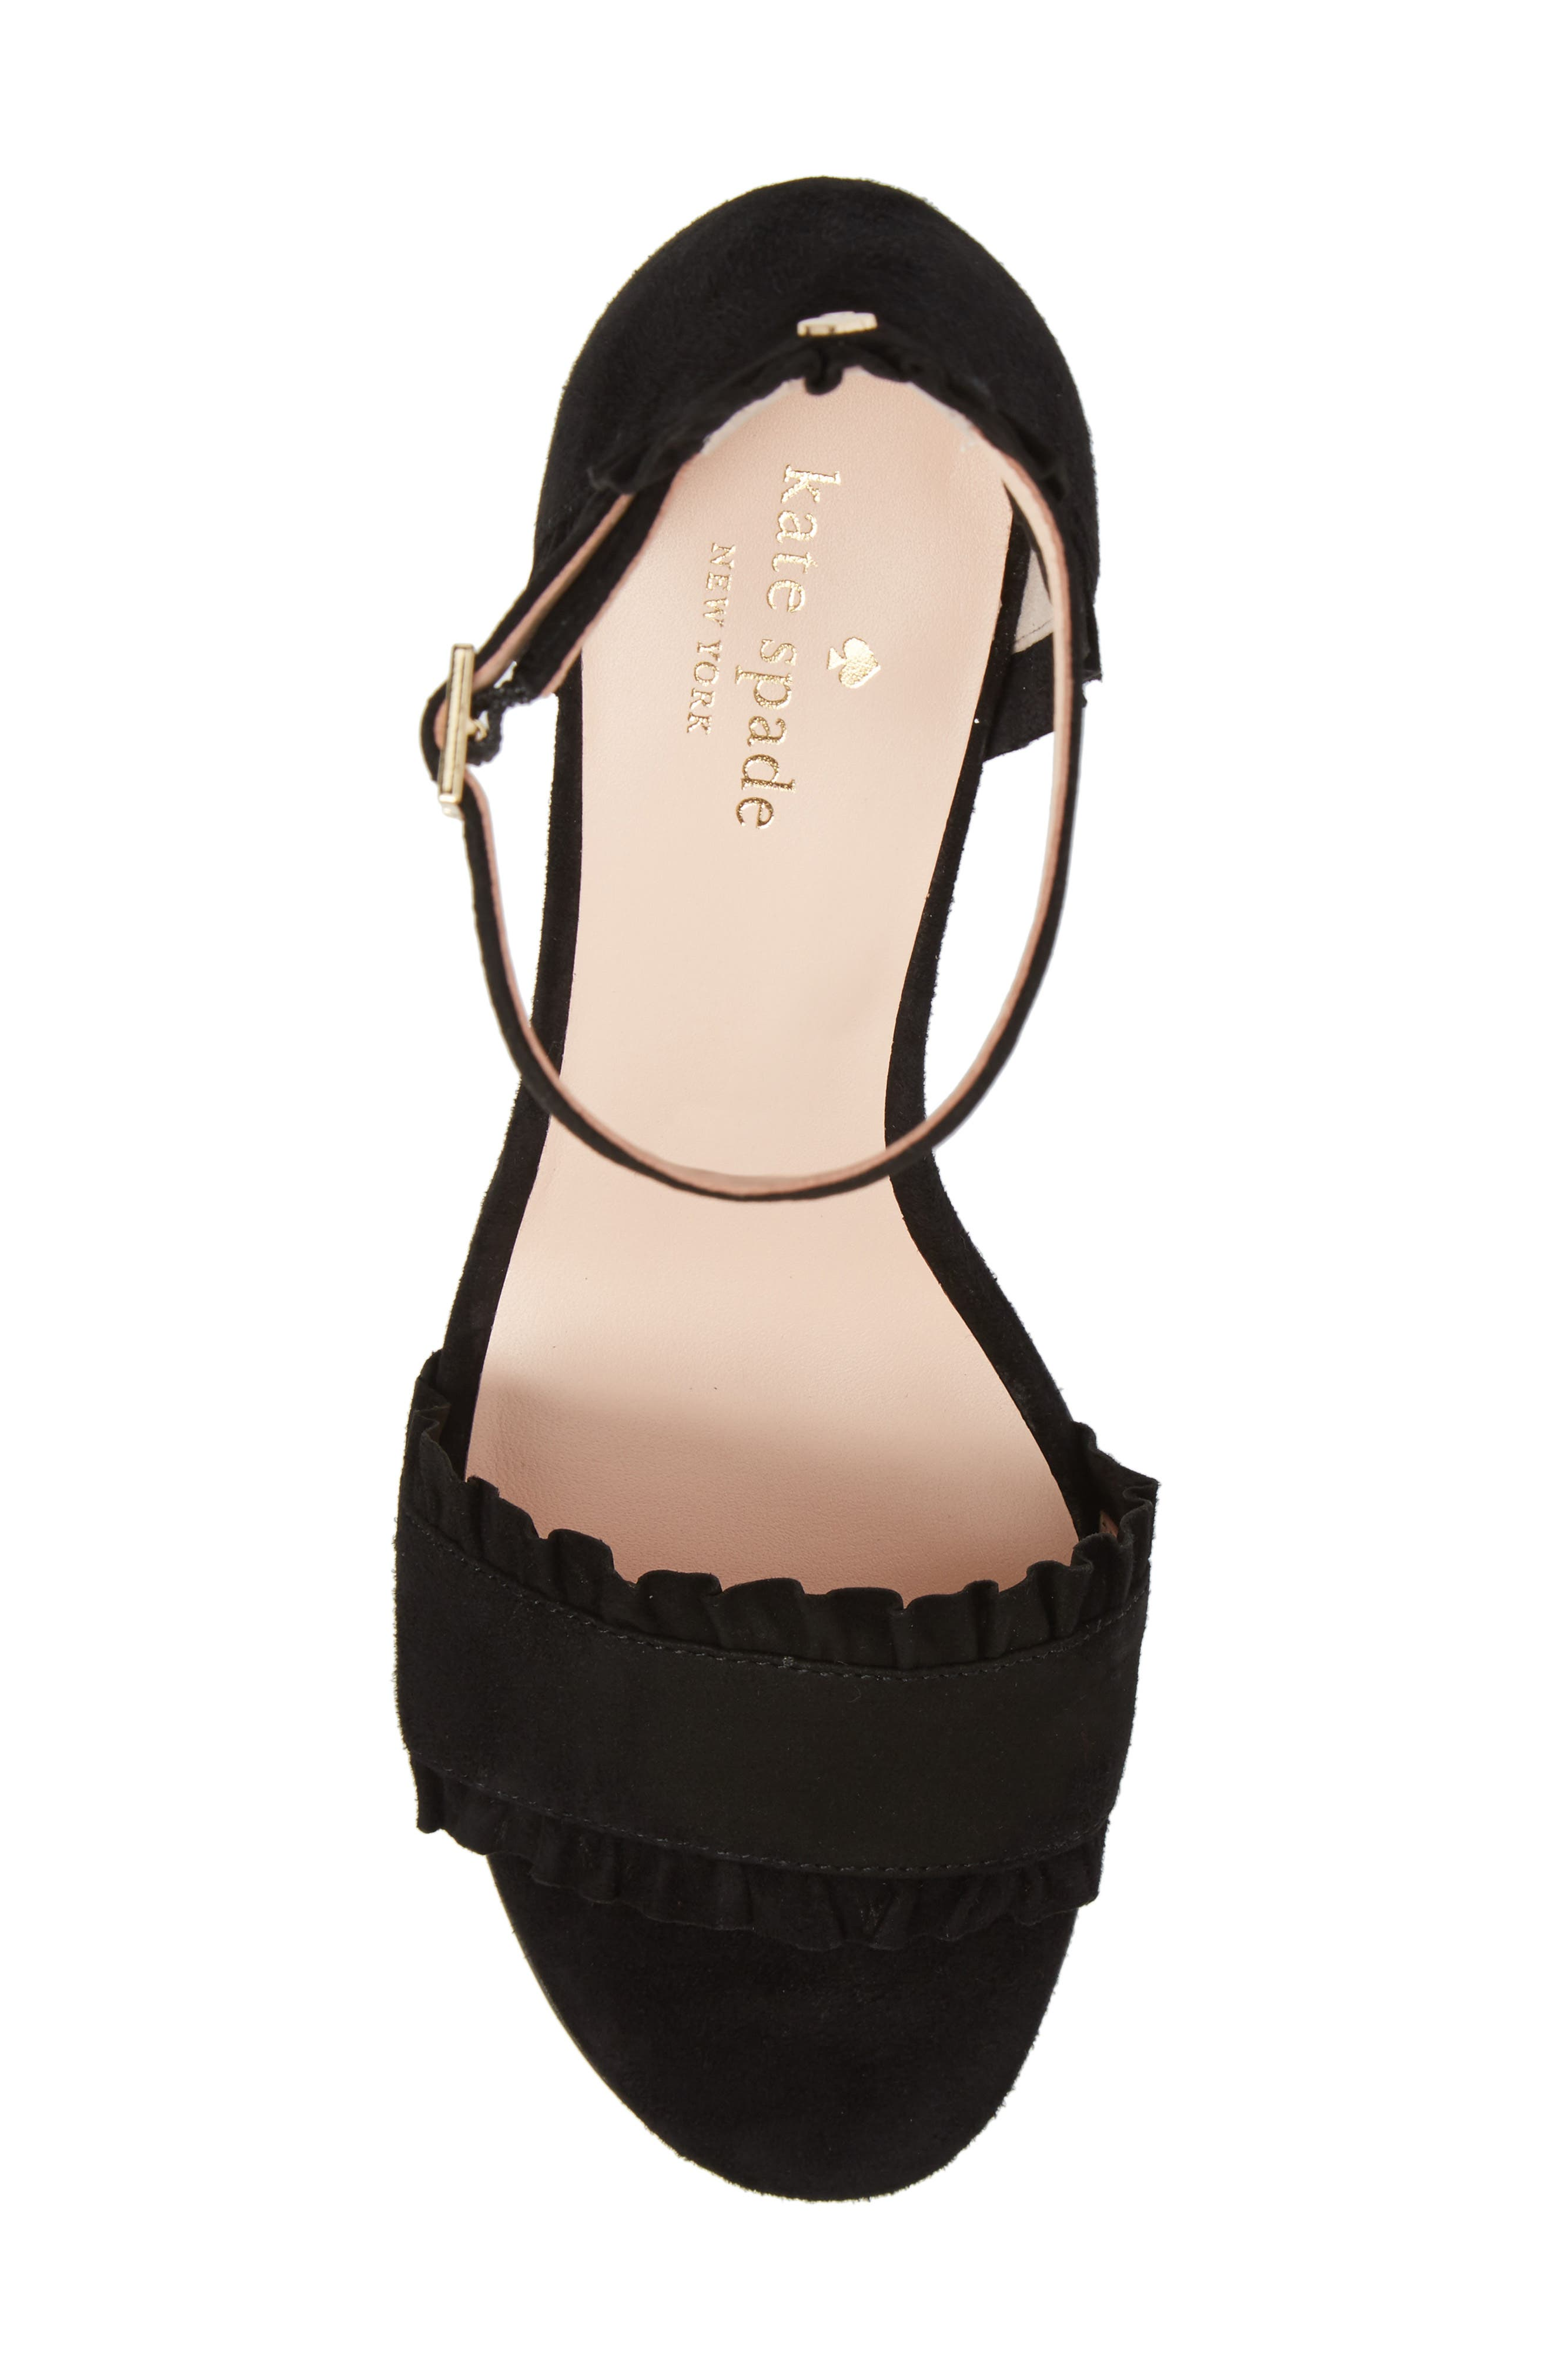 odele ruffle sandal,                             Alternate thumbnail 9, color,